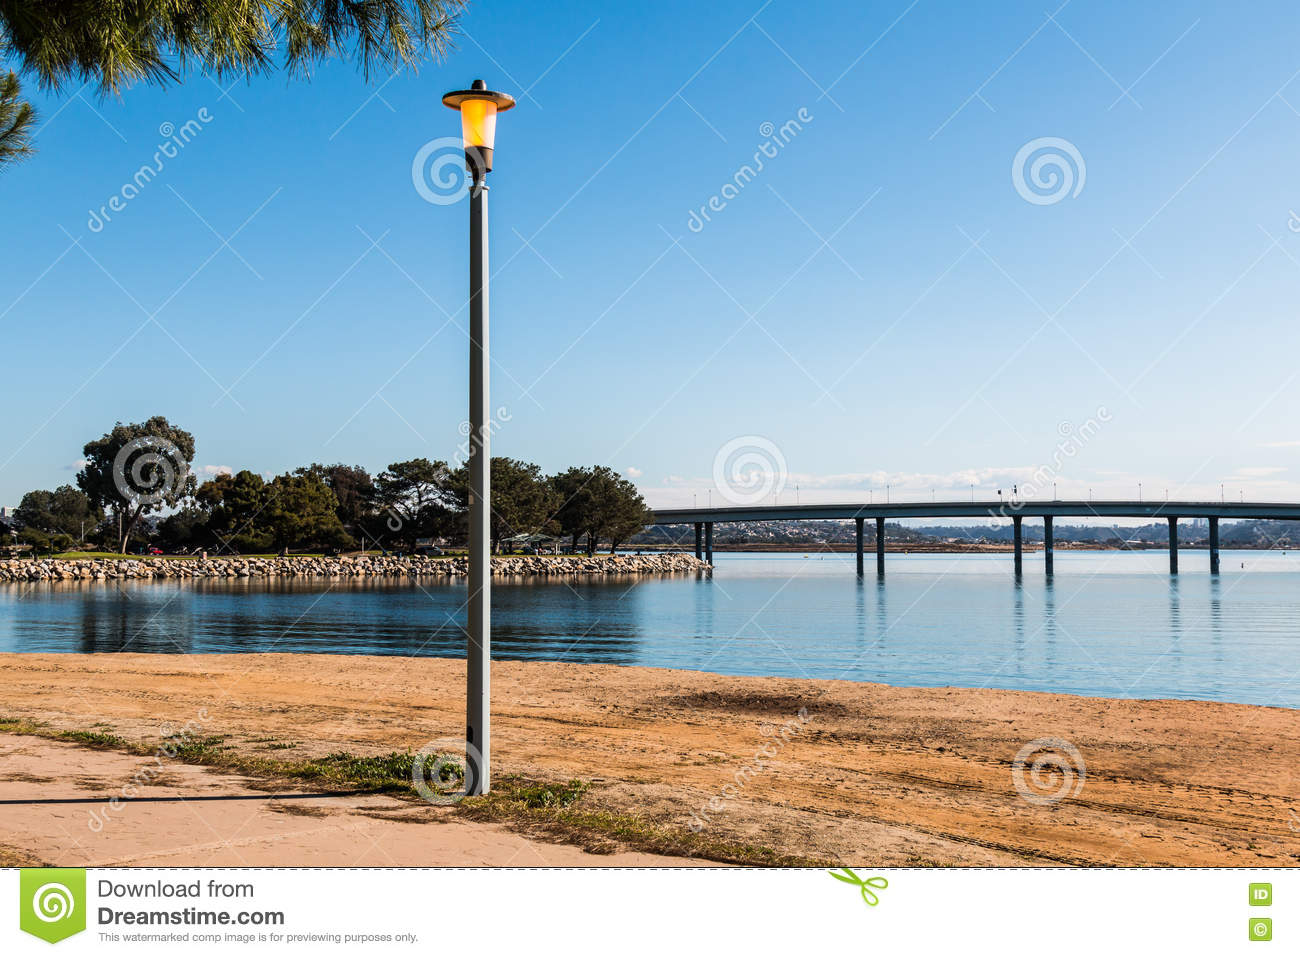 Casa de Balboa San Diego, Lamppost At Vacation Isle Park In San Diego With Bridge Stock ...